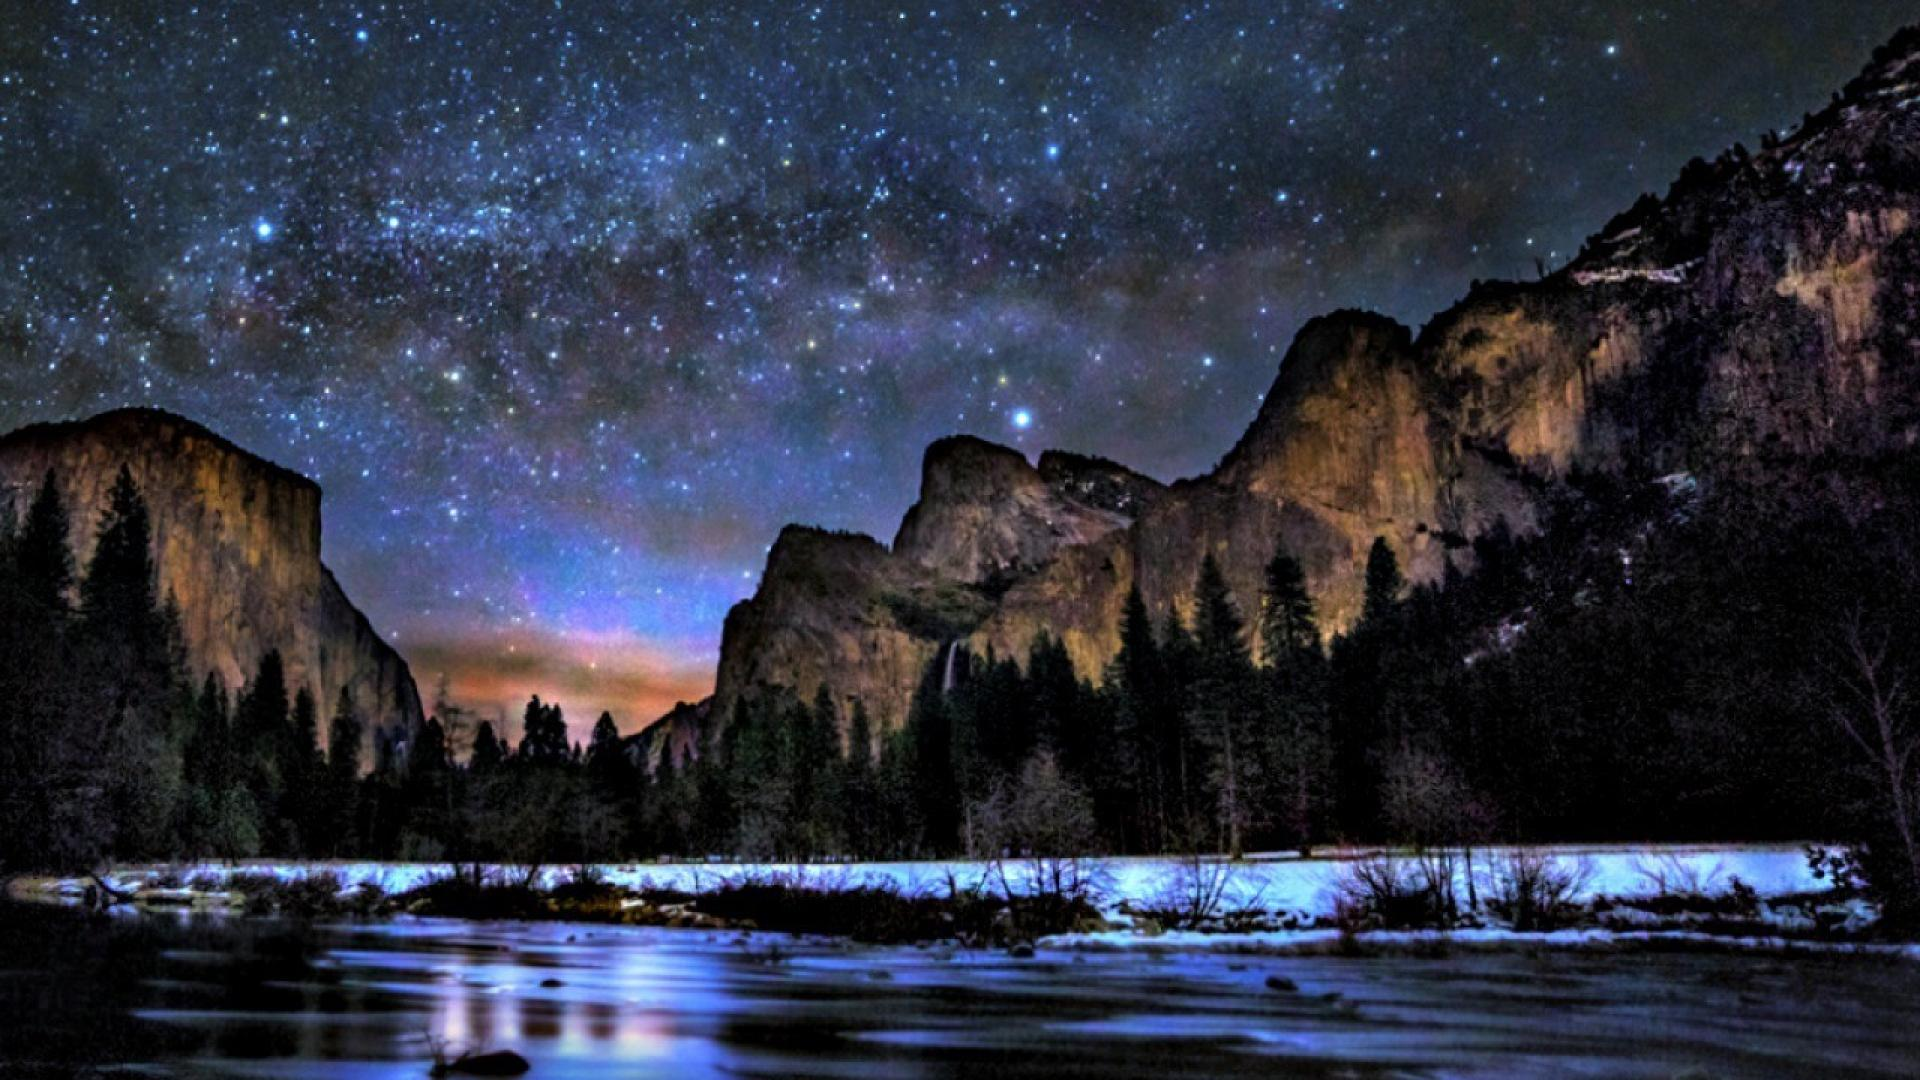 Way Peaceful Sky Lovely Yosemite National Park Wallpaper Yosemite National Park 3097114 Hd Wallpaper Backgrounds Download